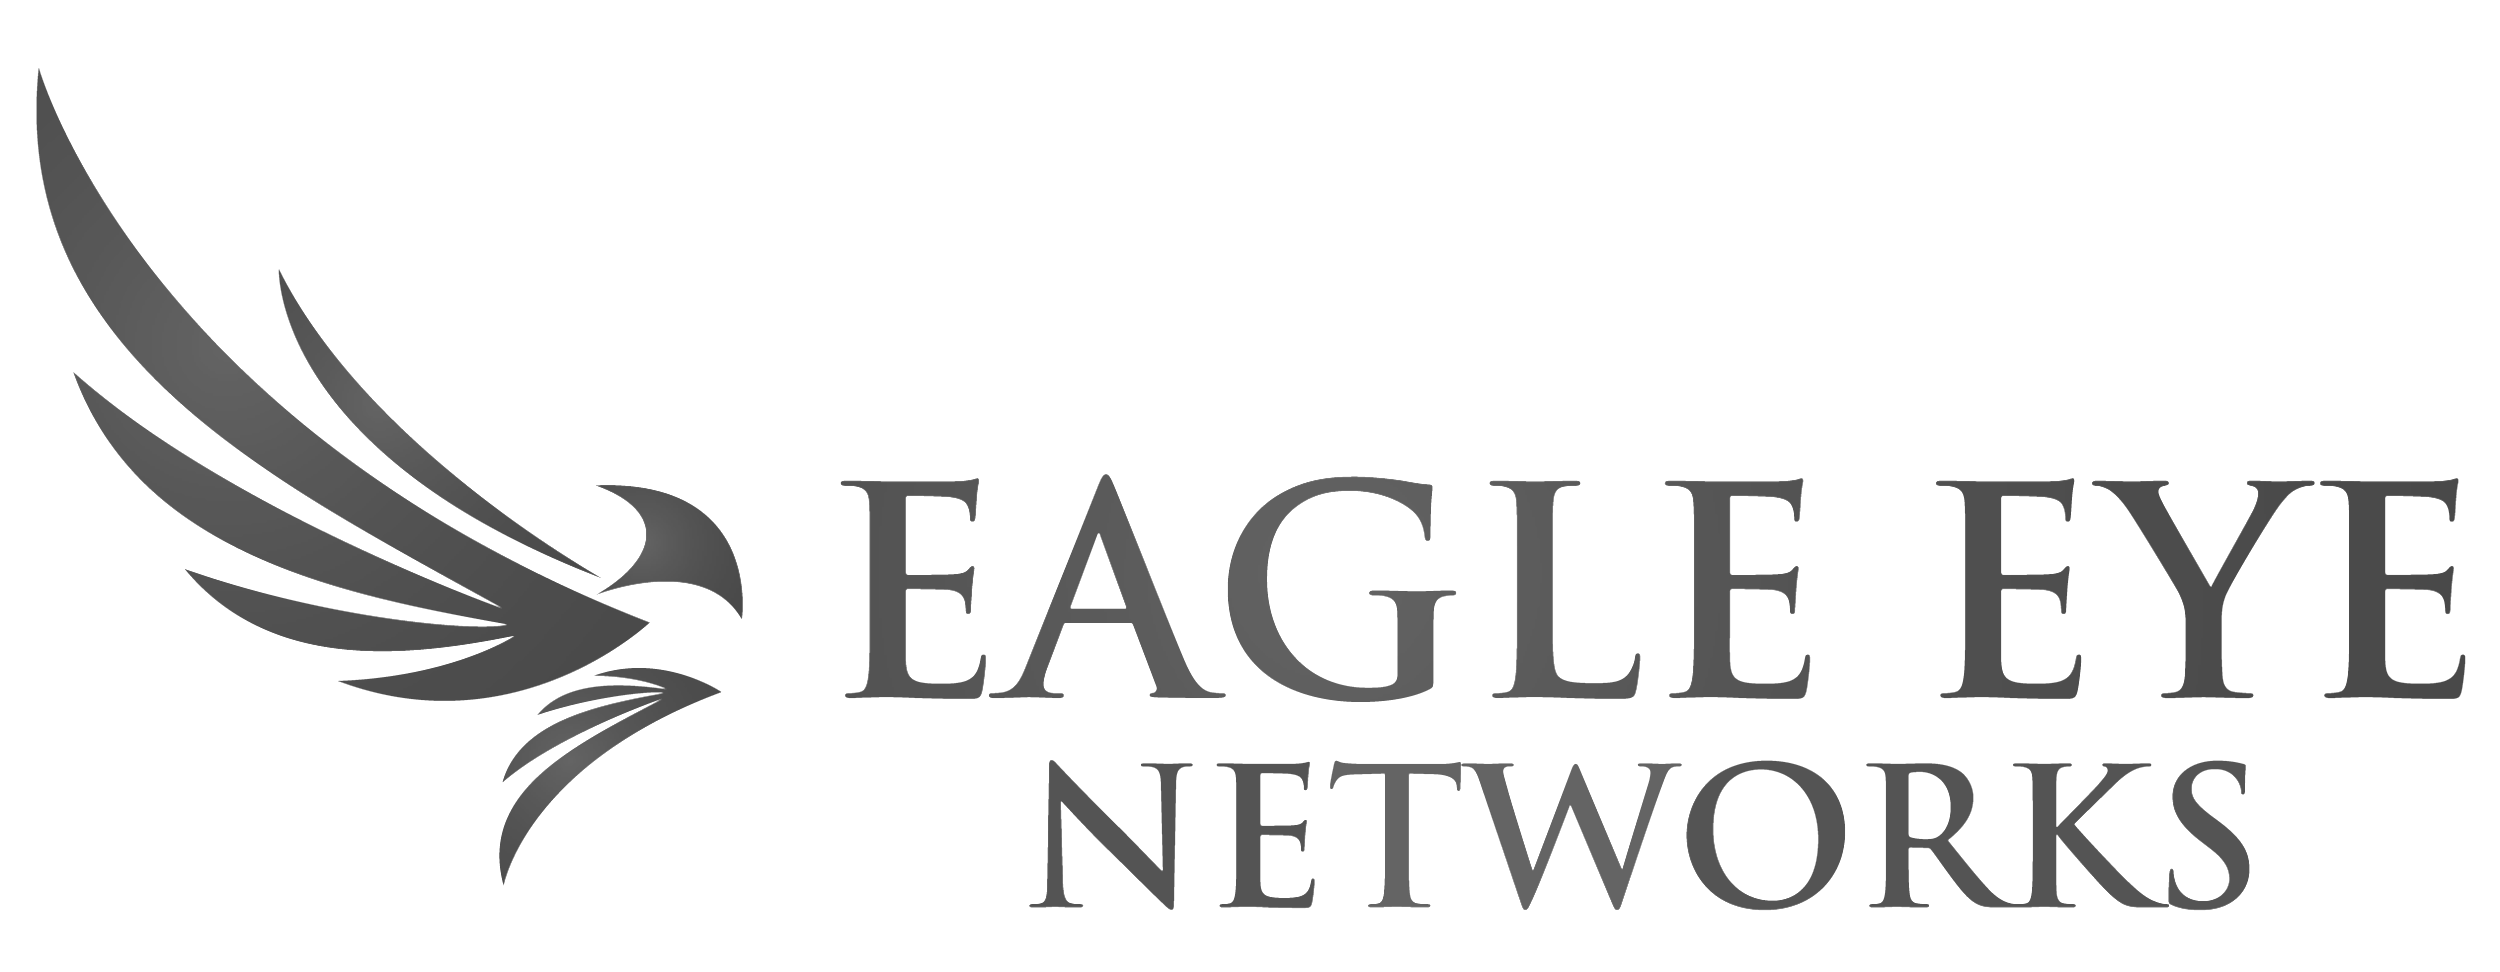 Eagle-Eye-LogoHorizontal-BW.png